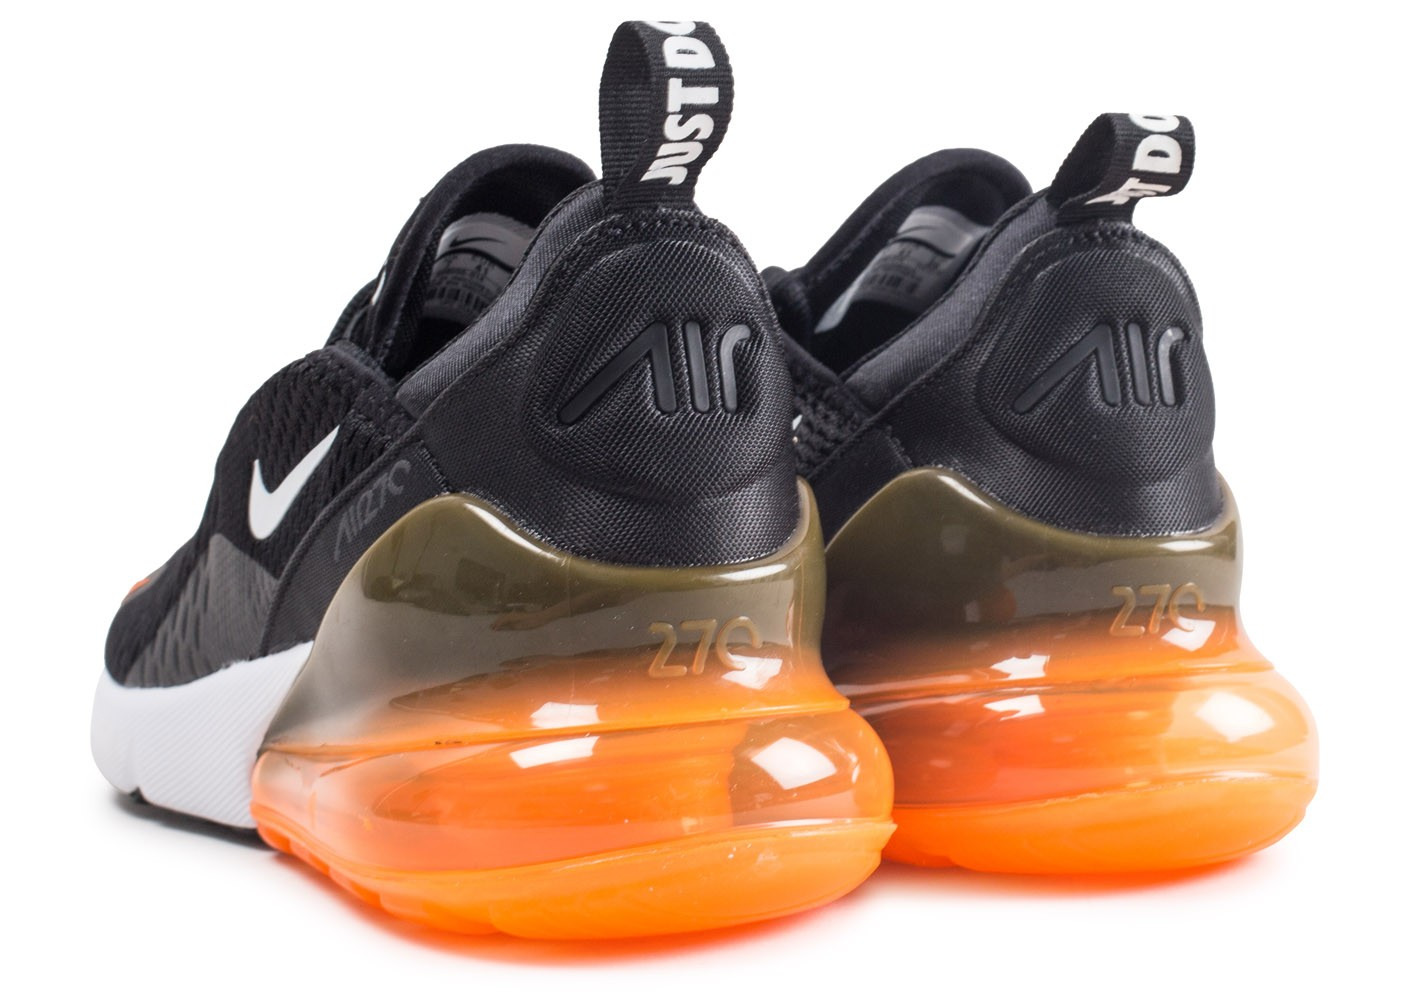 pretty nice d33d4 ffed5 ... canada chaussures nike air max 270 just do it noir total orange vue  dessous 9647c bfb2c